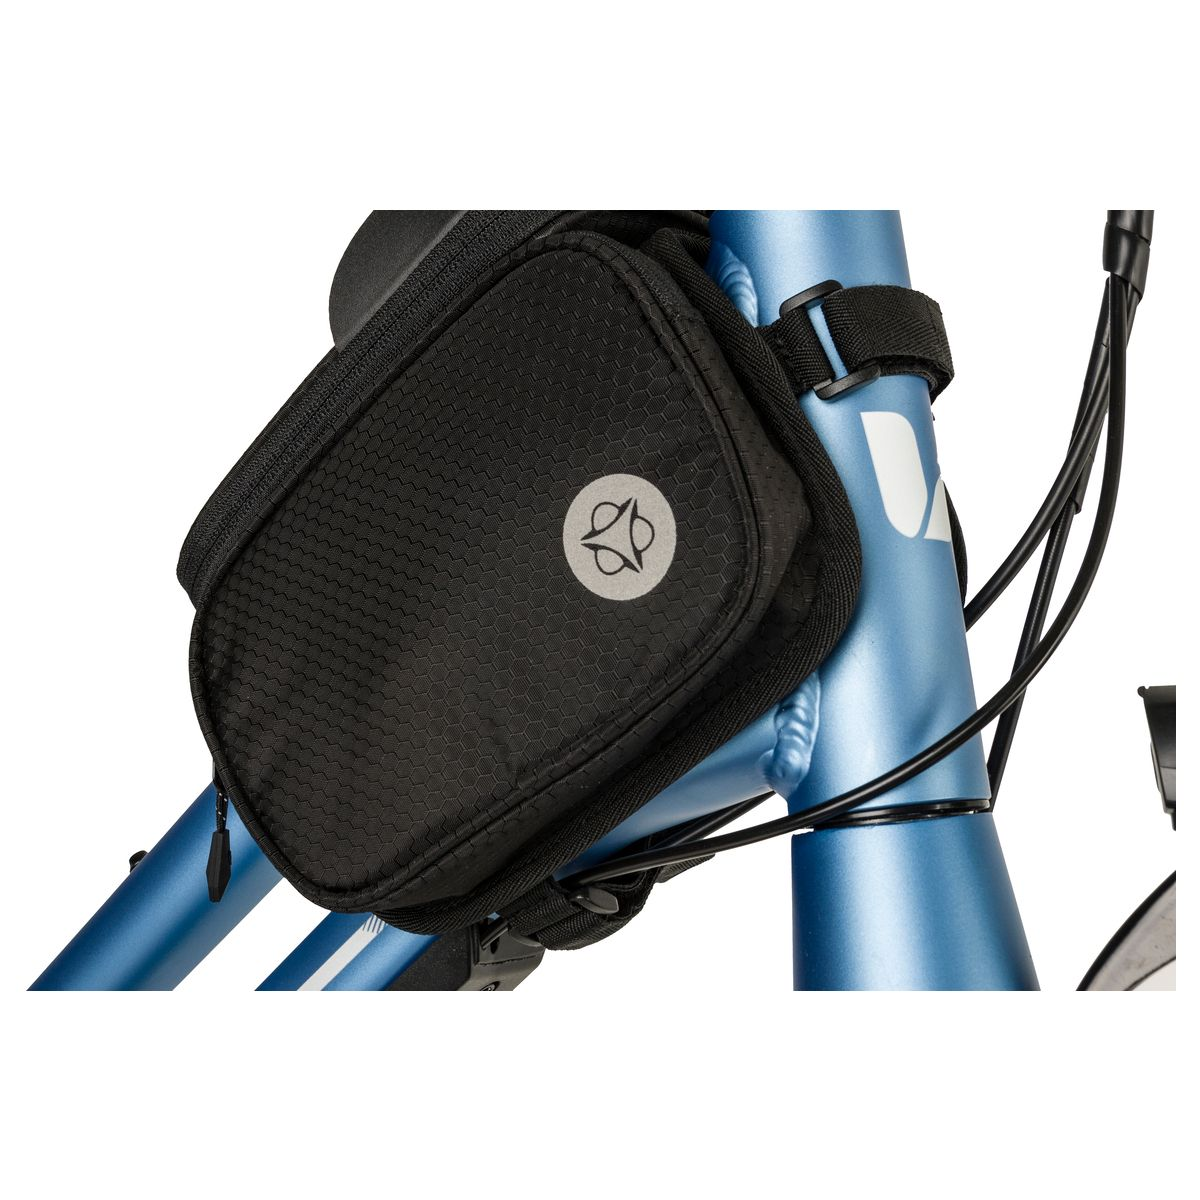 Double Frame Bag Performance DWR fit example